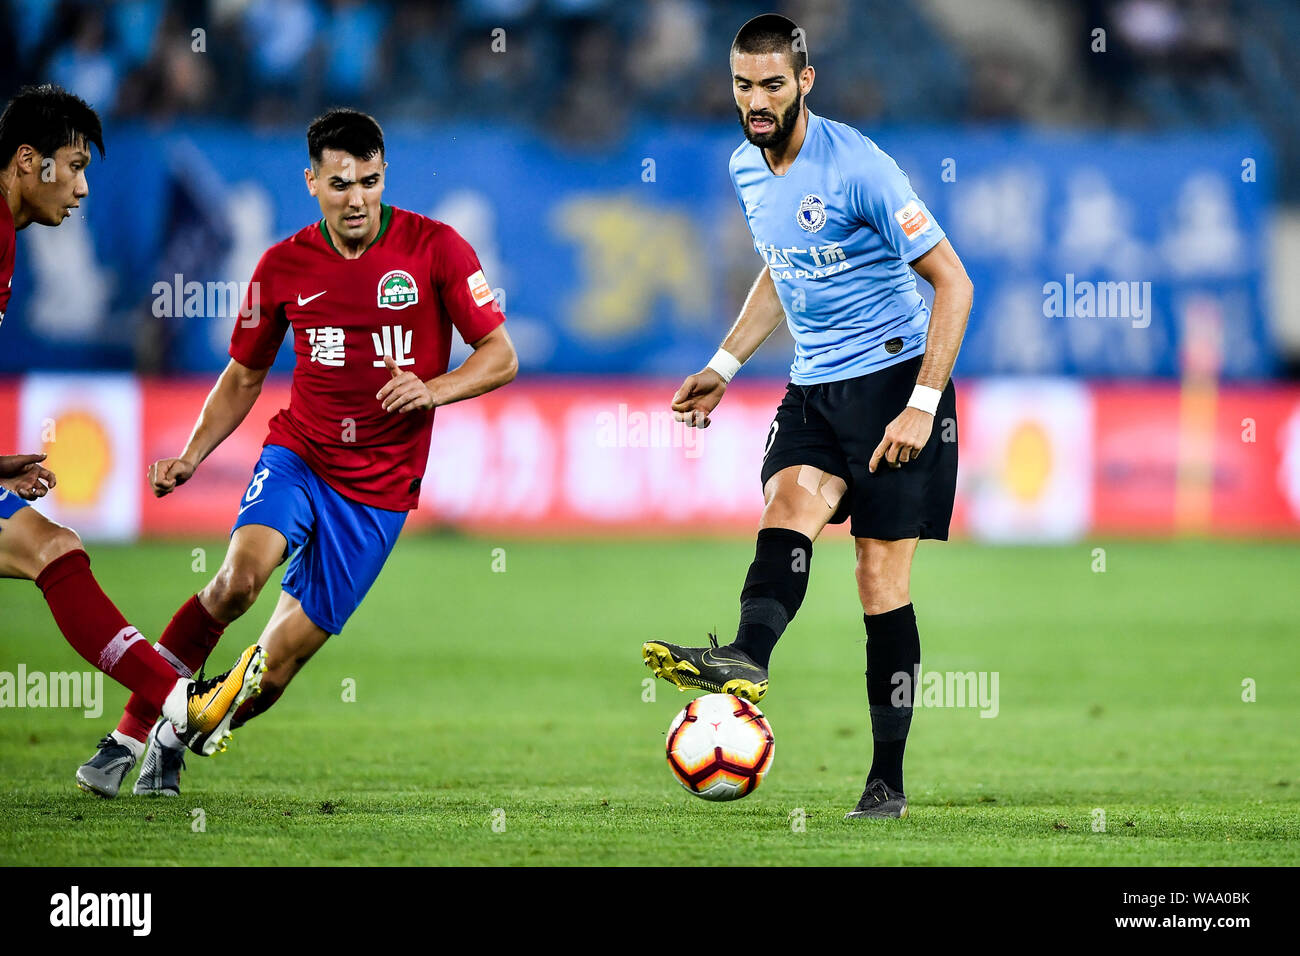 Belgian football player Yannick Ferreira Carrasco, right, of Dalian Yifang passes the ball against English-born Taiwanese football player Tim Chow of Stock Photo